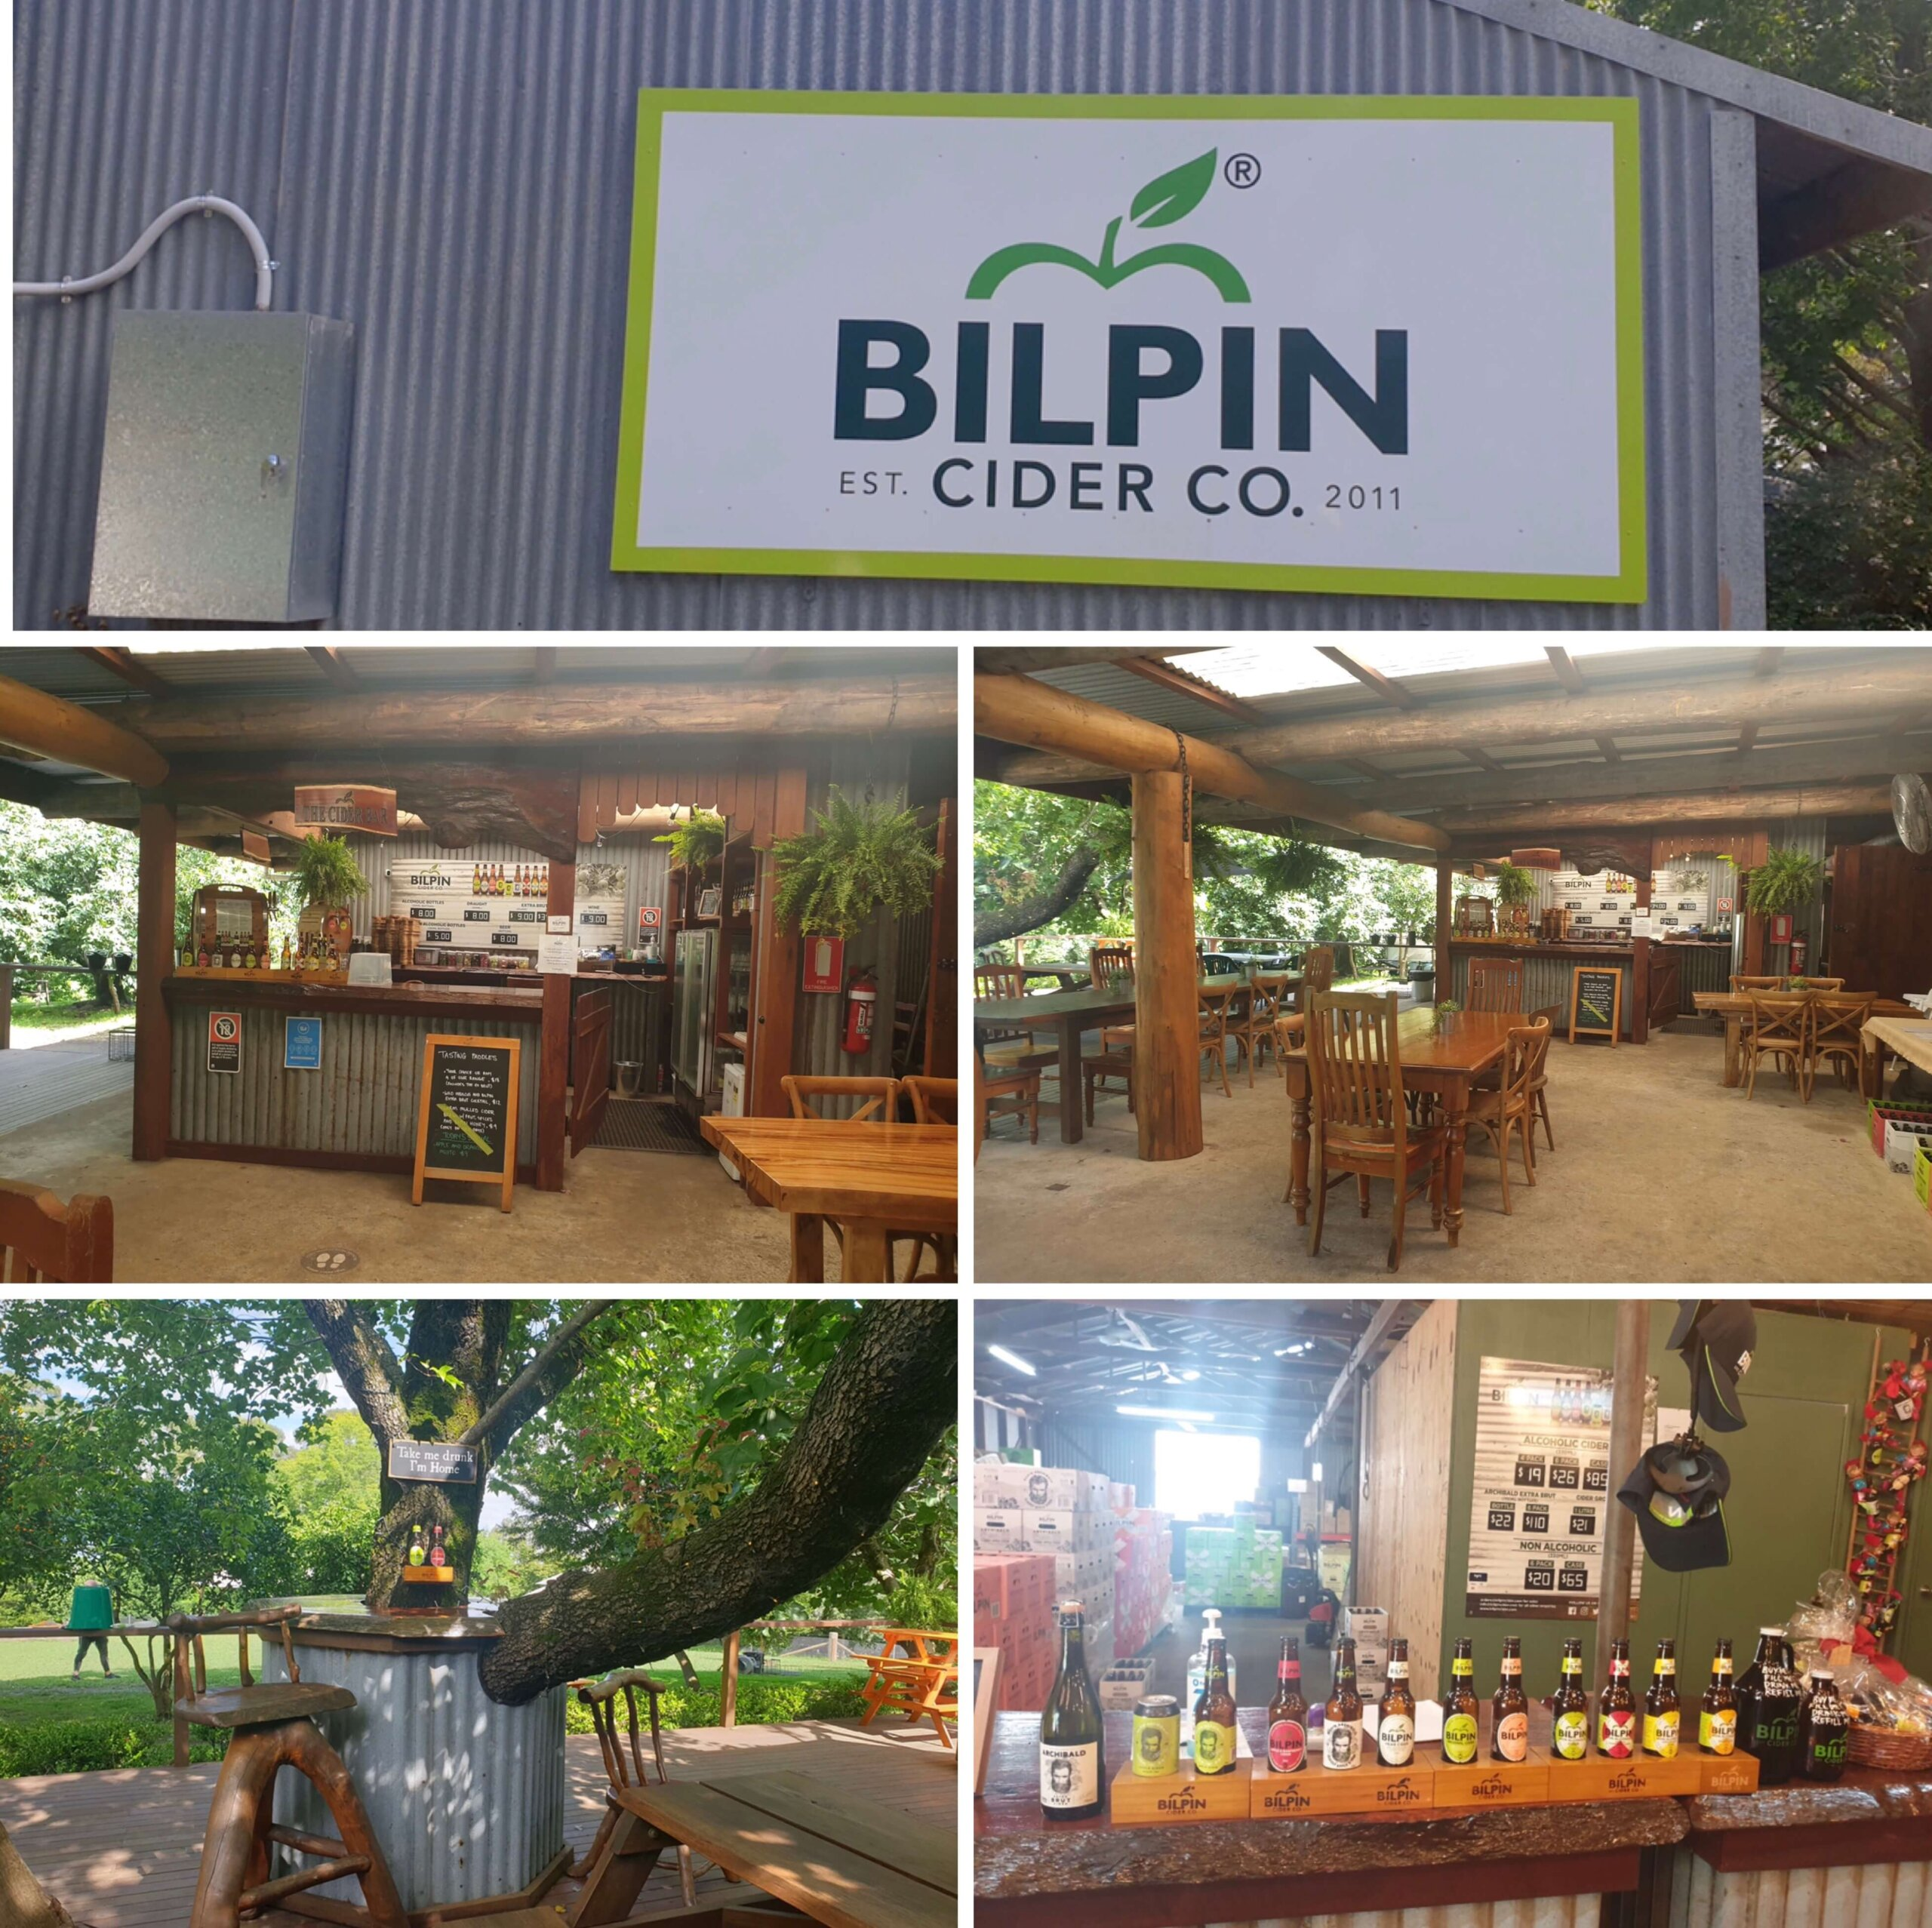 Bilpin Cider Co